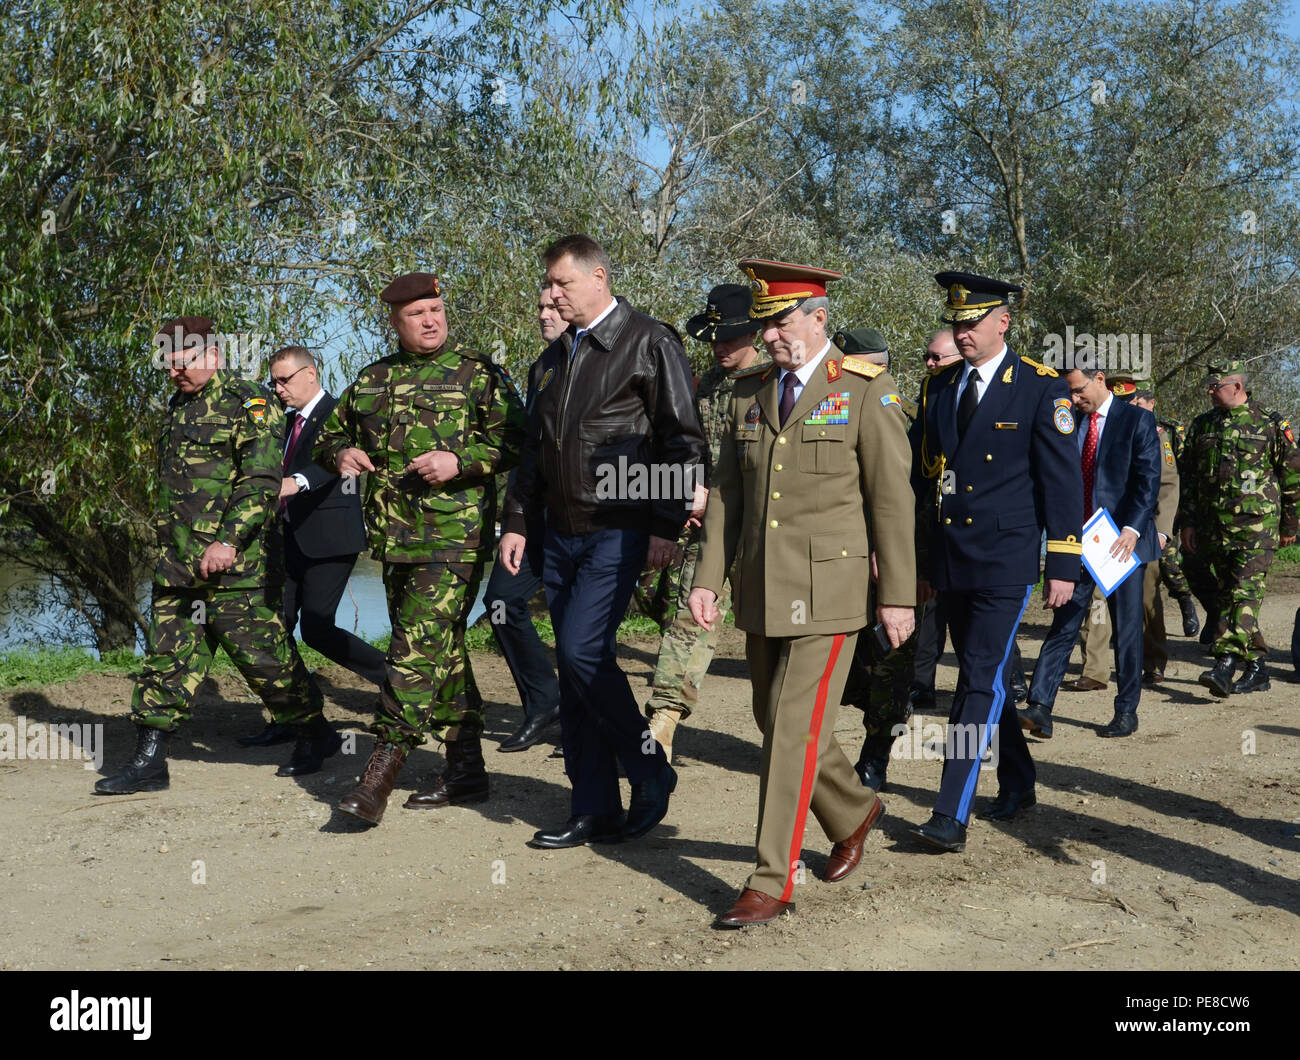 The President of Romania, Klaus Iohannis (right center), walks and talks with Lt. Gen. Nicolae-Ionel Ciuca, the chief of the Romanian Army, on the upper bank of the Mures River, near Arad, Romania during Exercise Dragoon Crossing, Oct. 24-26, 2015. Exercise Dragoon Crossing – Romania is a strengthening of NATO's persistent presence in the region in support of Operation Atlantic Resolve. (U.S. Army photo by Staff Sgt. Steven M. Colvin/10th Press Camp Headquarters) - Stock Image